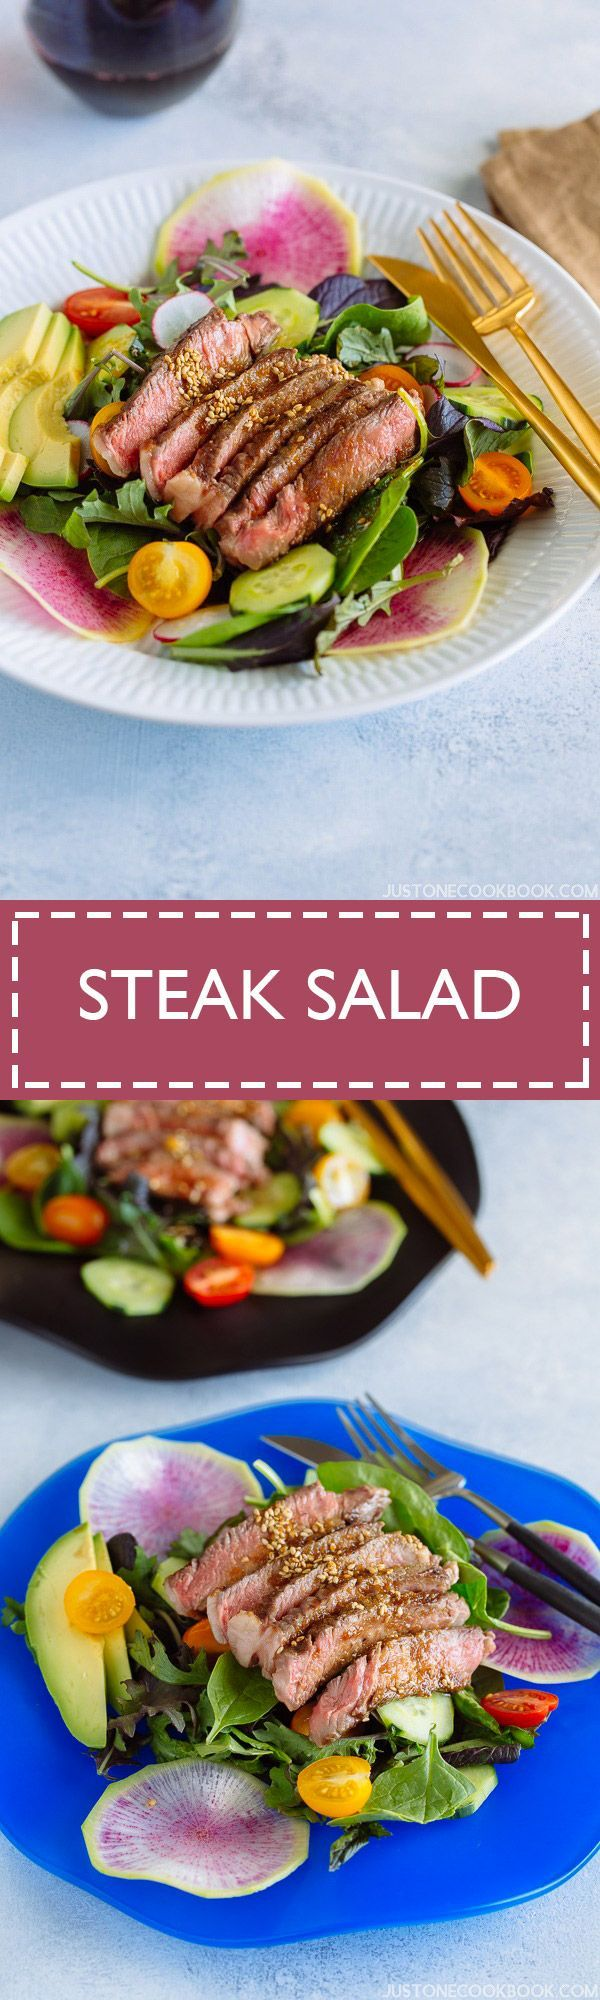 Hearty, satisfying, and delicious steak salad that kicks your average green salad up a notch with sizzling steak and savory Japanese-style shoyu dressing!